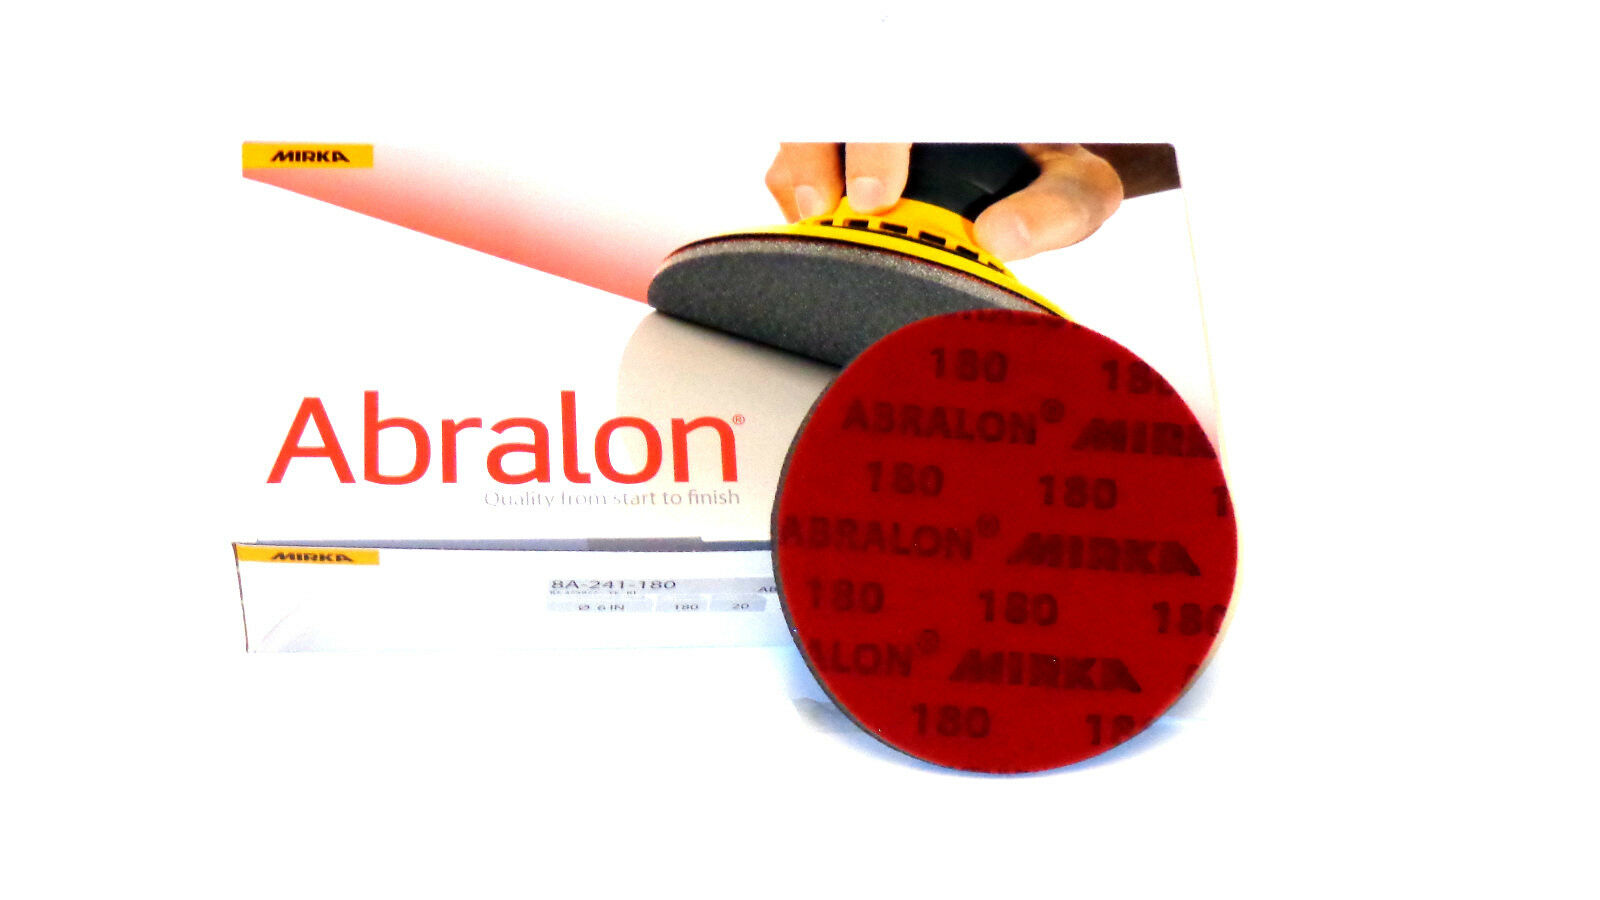 BOWLING ACCESSORIES 20  6   ABRALON PADS NEW 4000 GRIT - AUTHENTIC PADS BY MIRKA